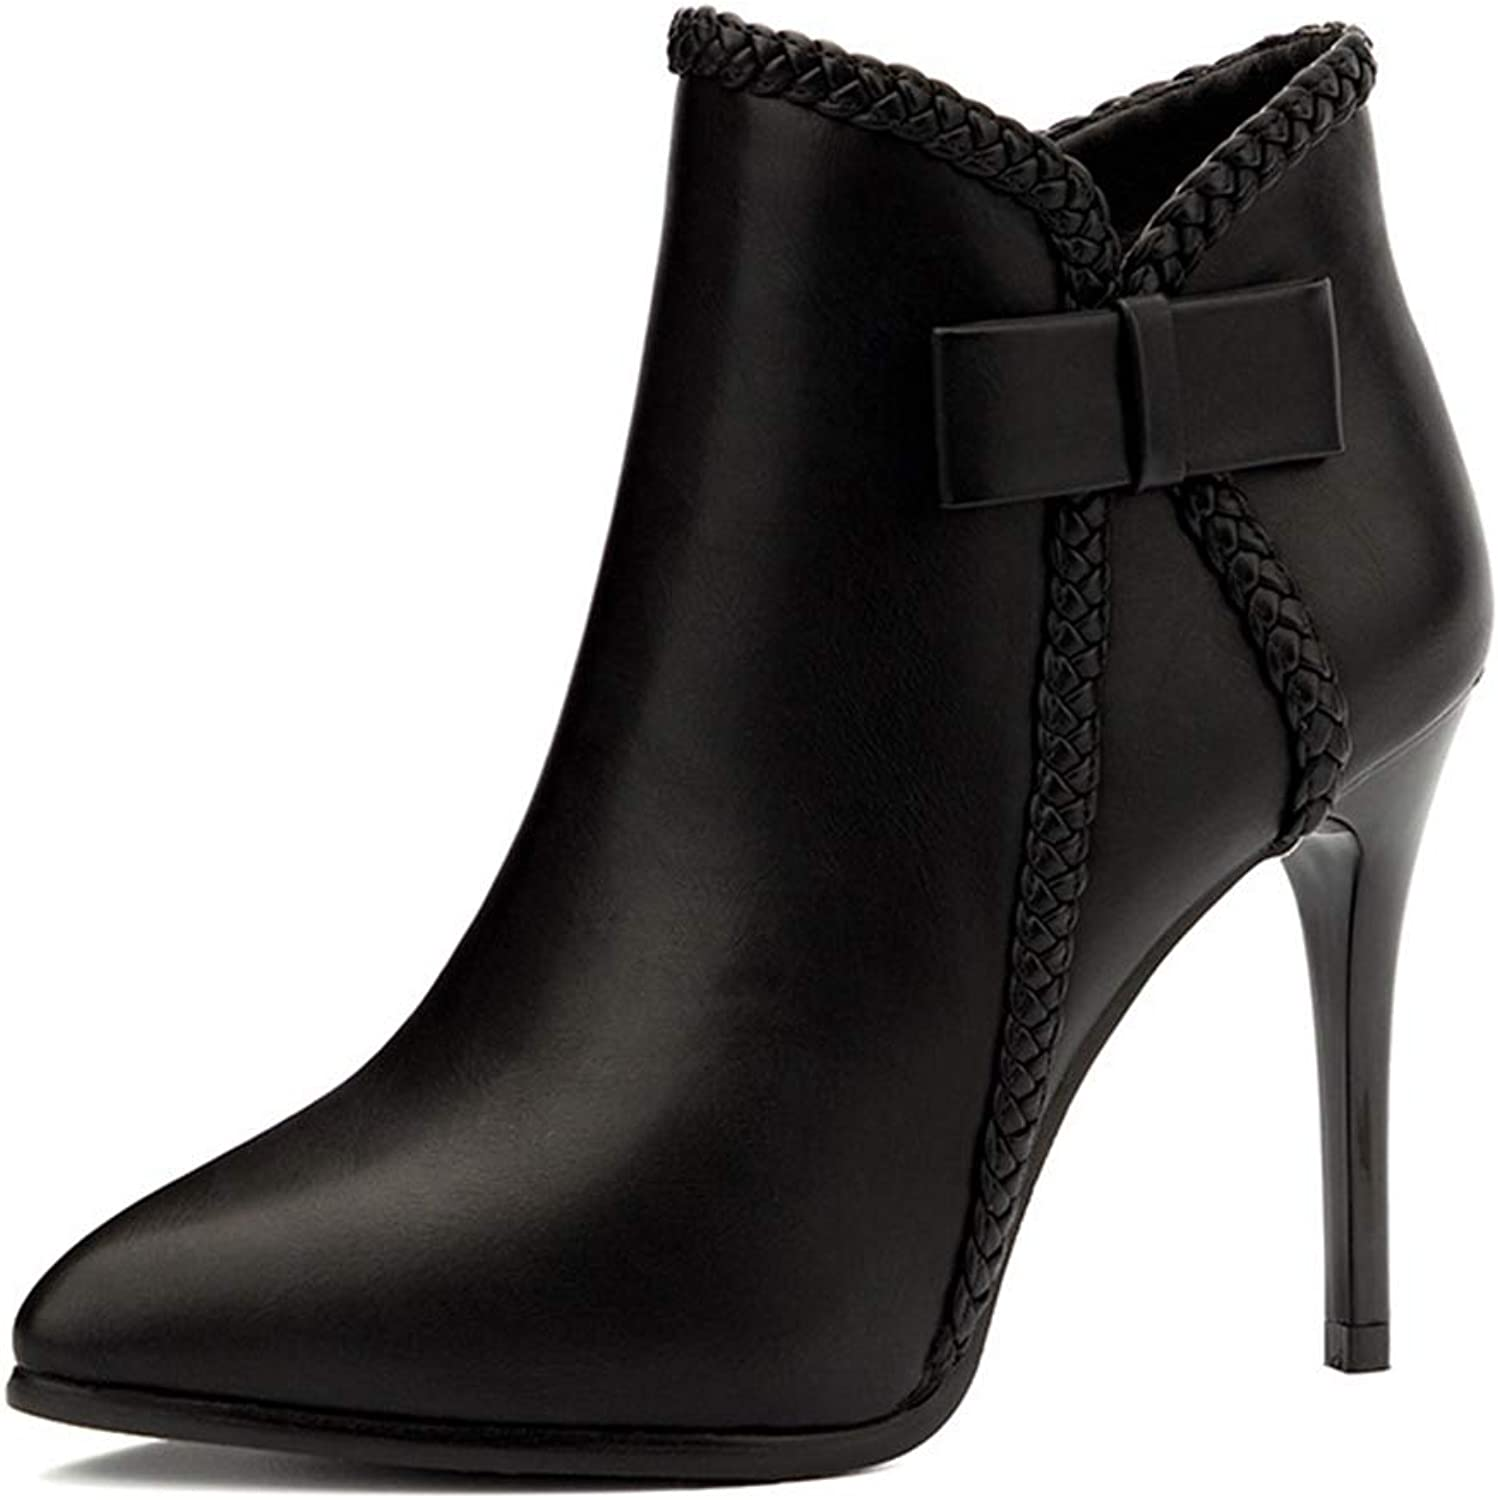 CYBLING Women's Bowknot Ankle Boots Pointed Toe Stiletto High Heel Side Zipper Ladies Short Booties